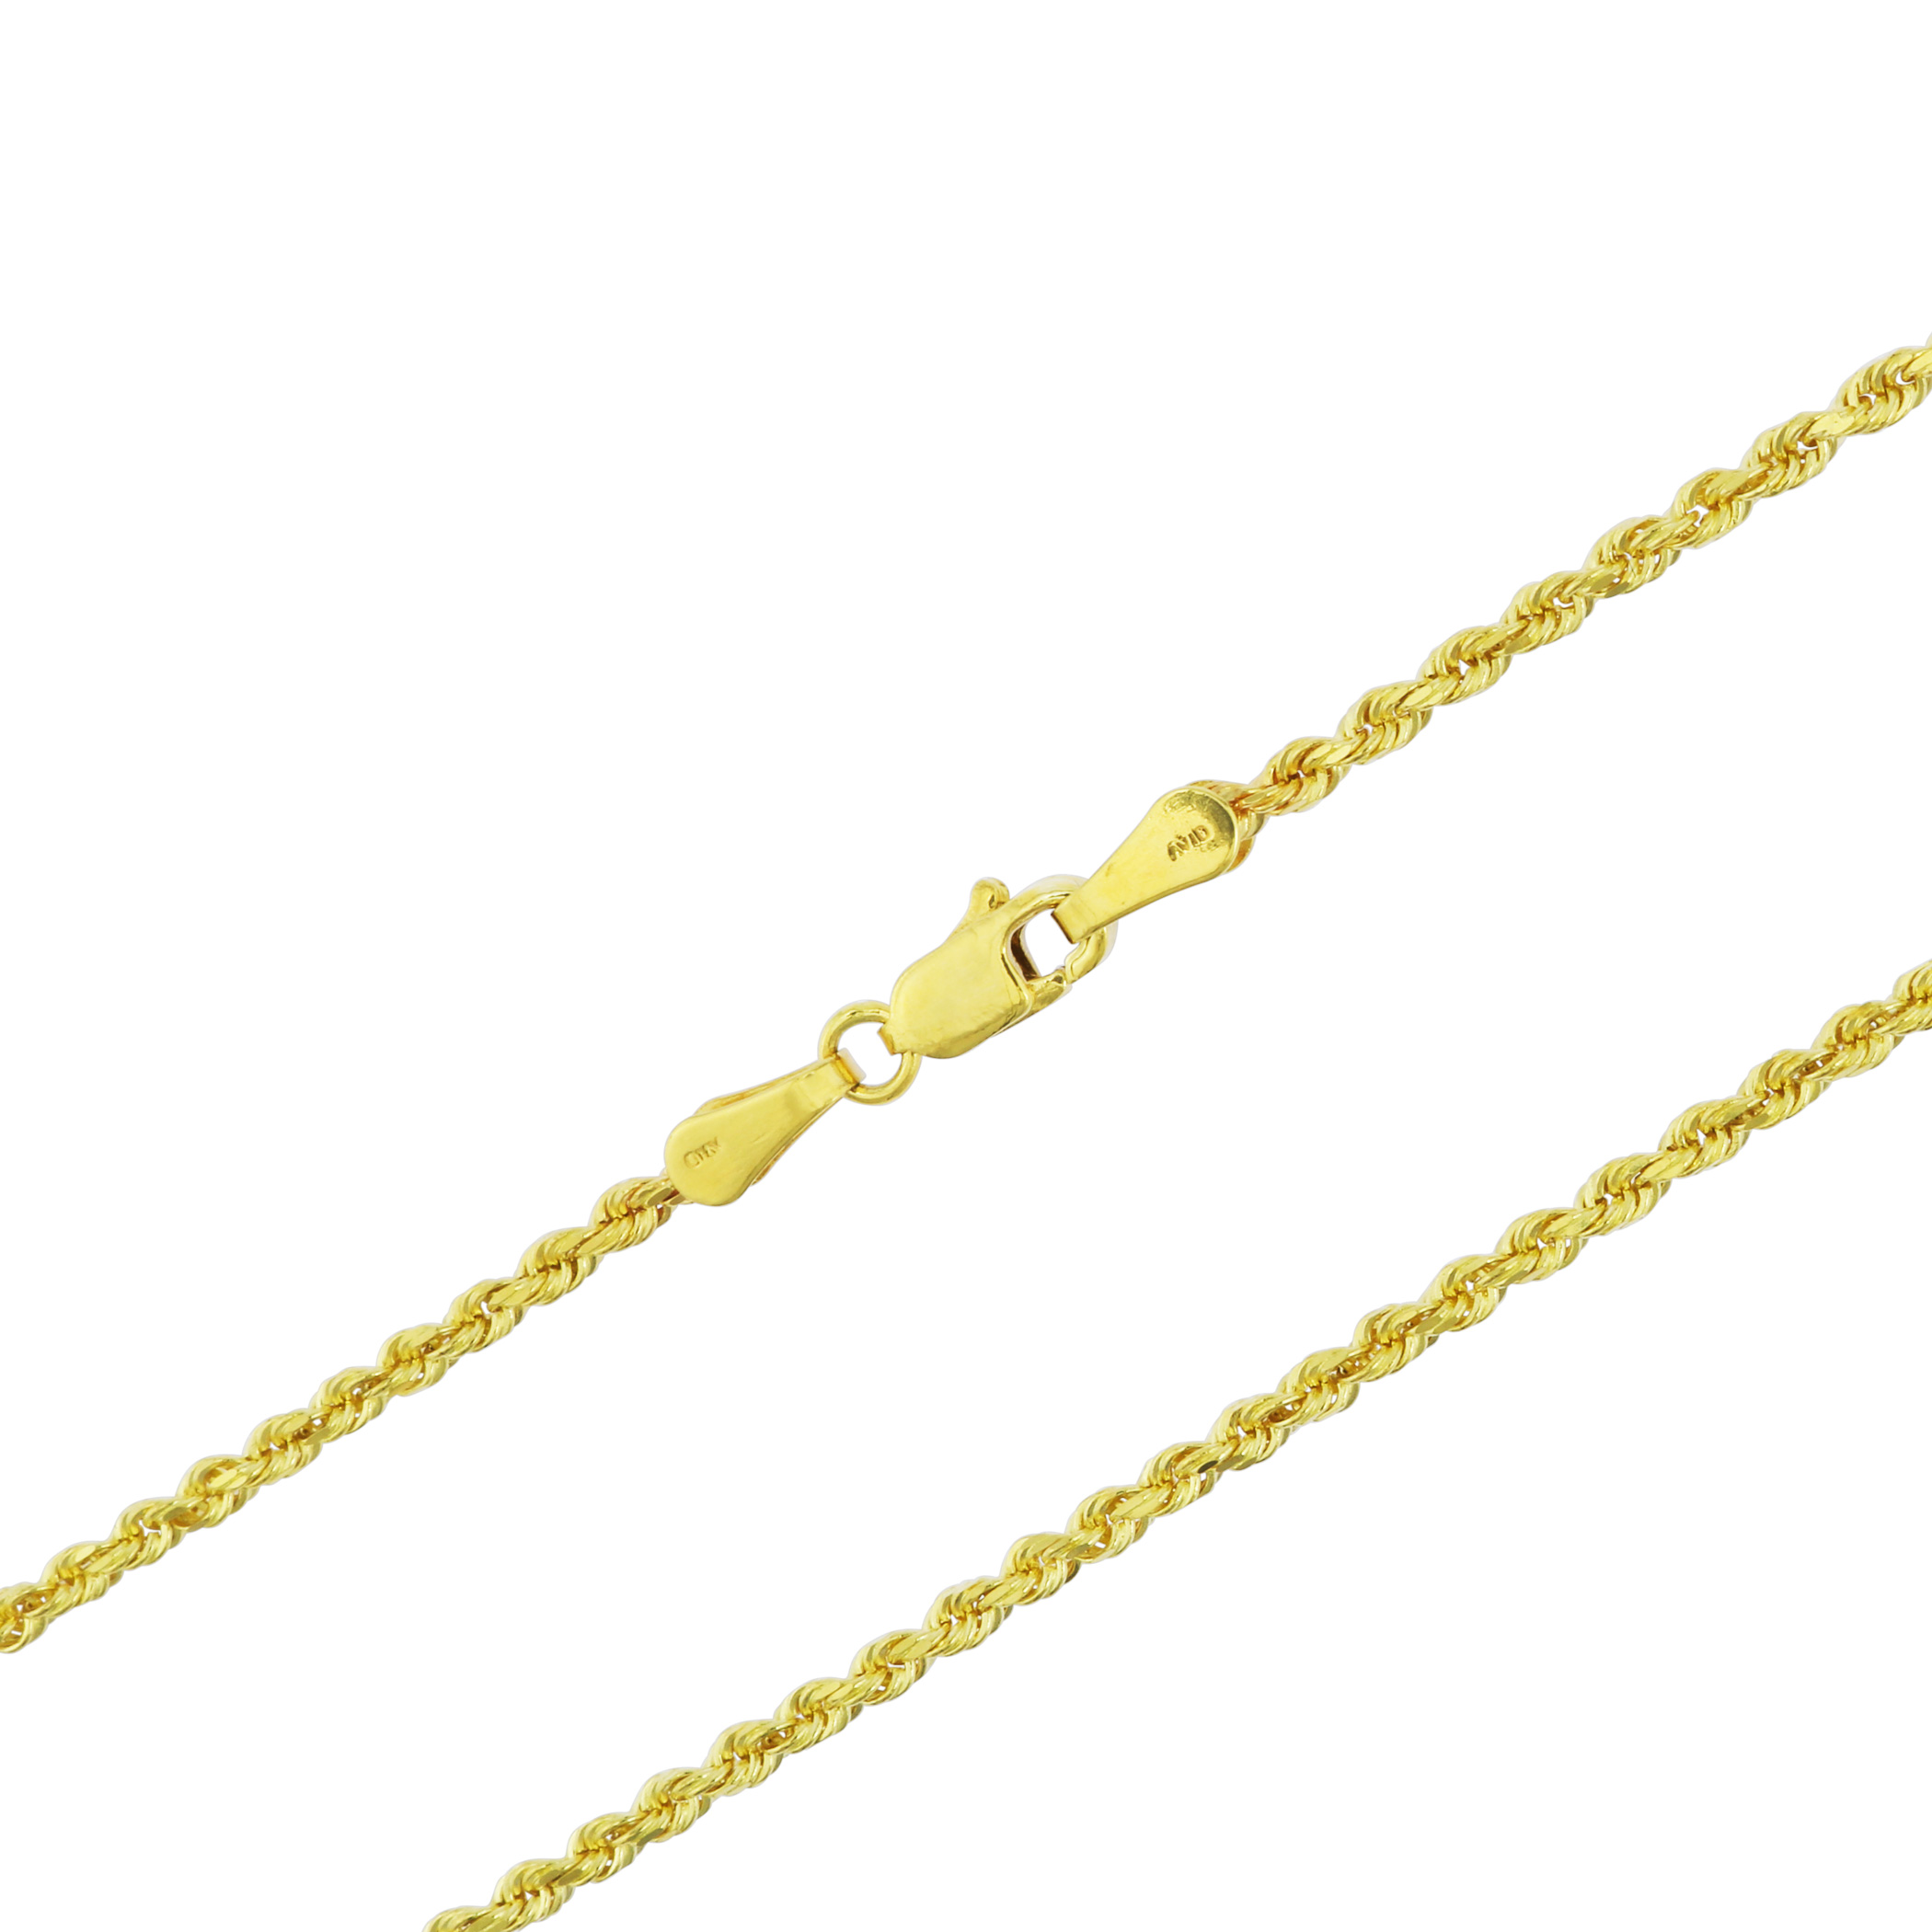 1687379fed446 Details about Solid 14k Yellow Gold 2mm Italian Diamond Cut Rope Link Chain  Necklace 16